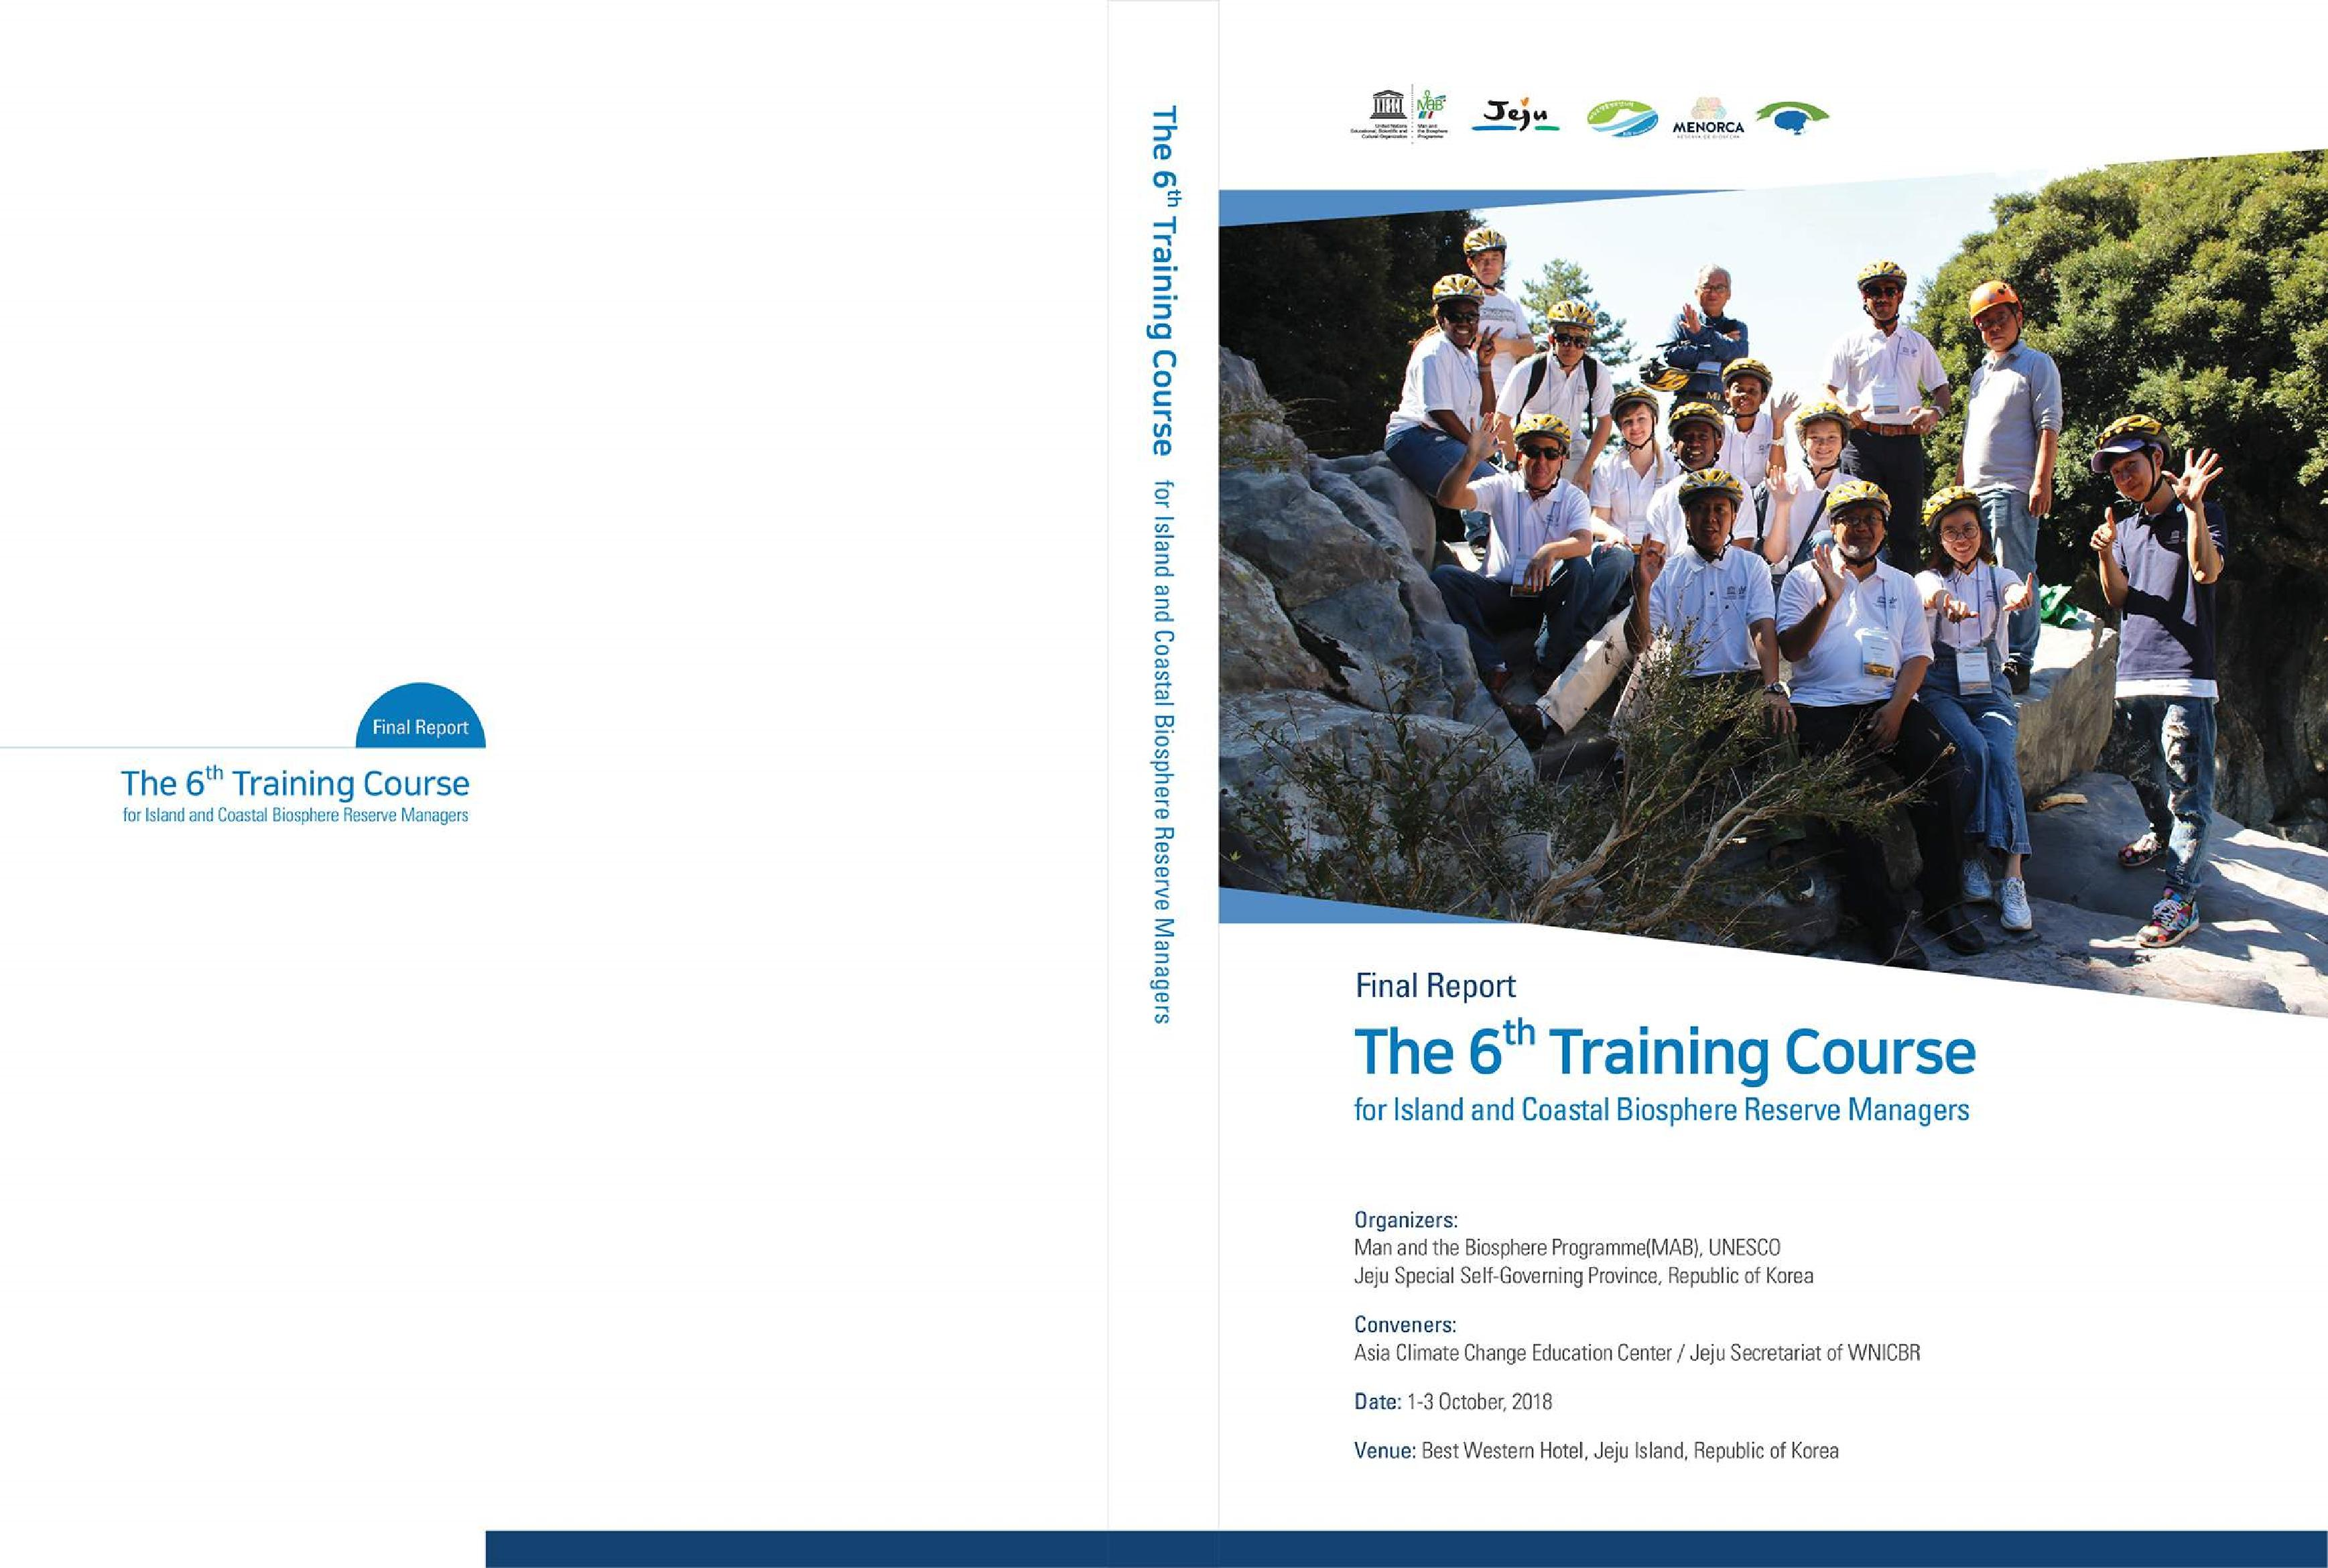 The 6th WNICBR Managers Training Course - Final Report